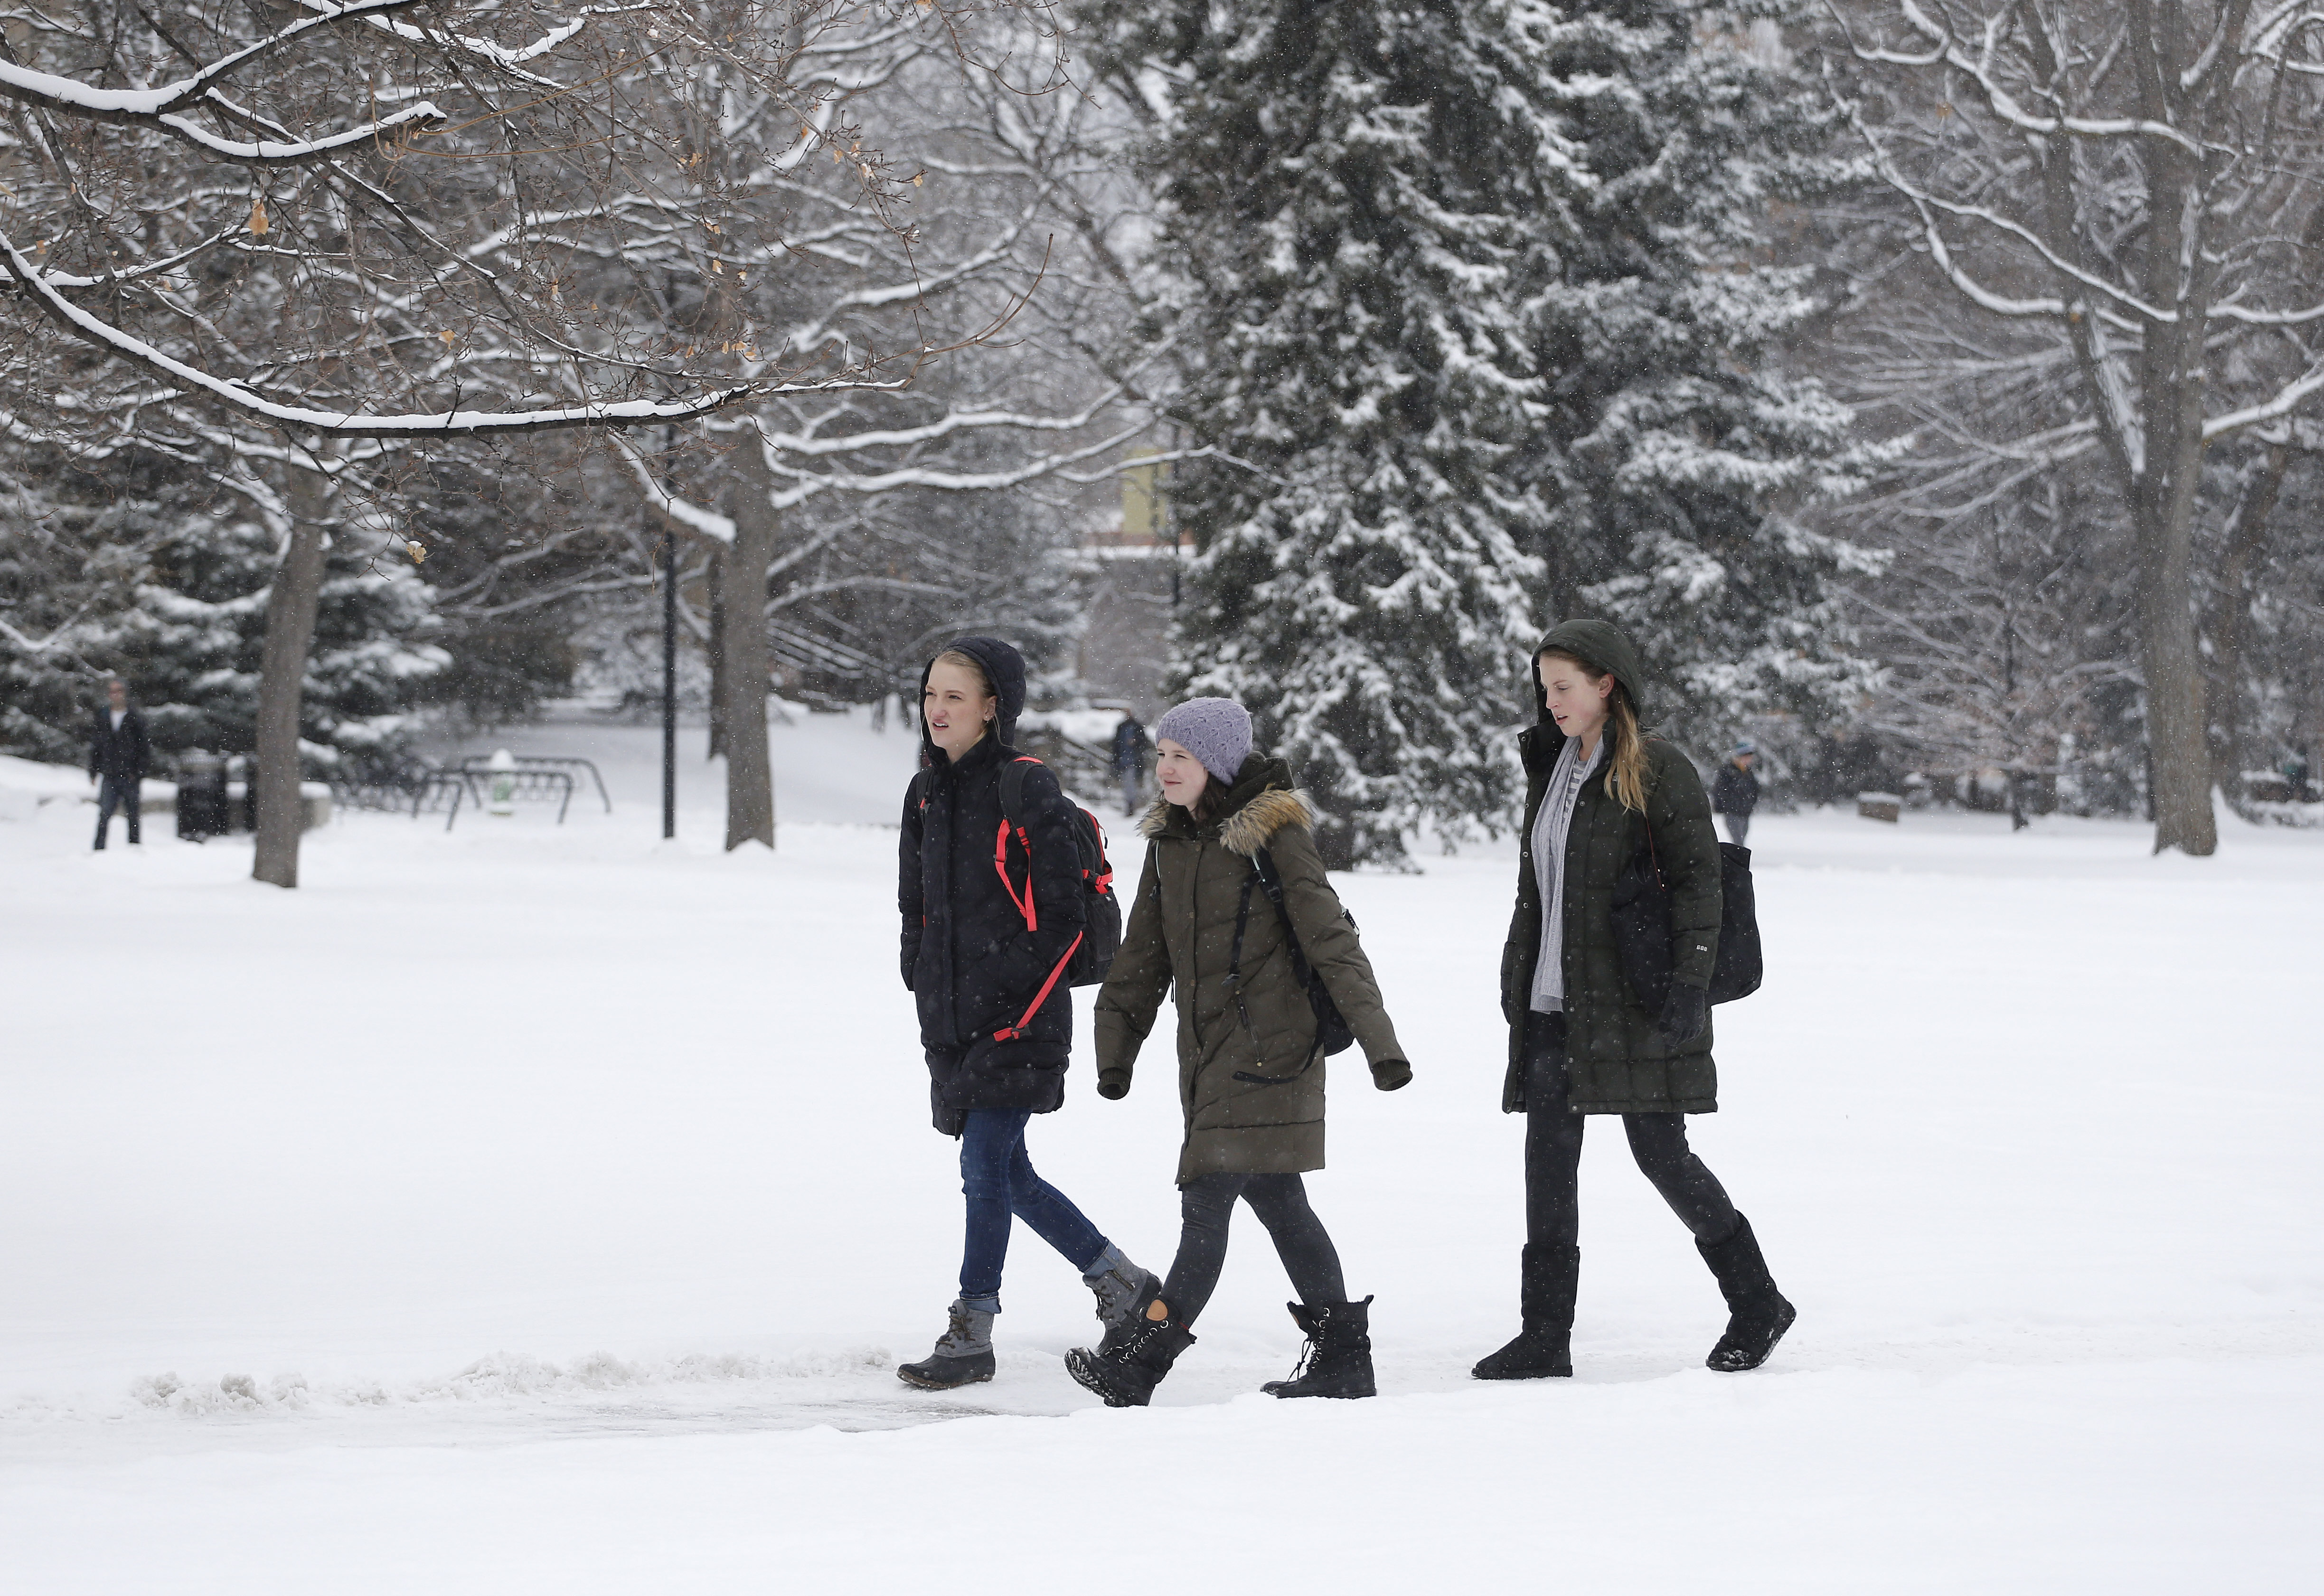 Students walk between classes during a fresh snow fall on the campus of the University of Colorado, in Boulder, Colo. on Feb. 1, 2016.